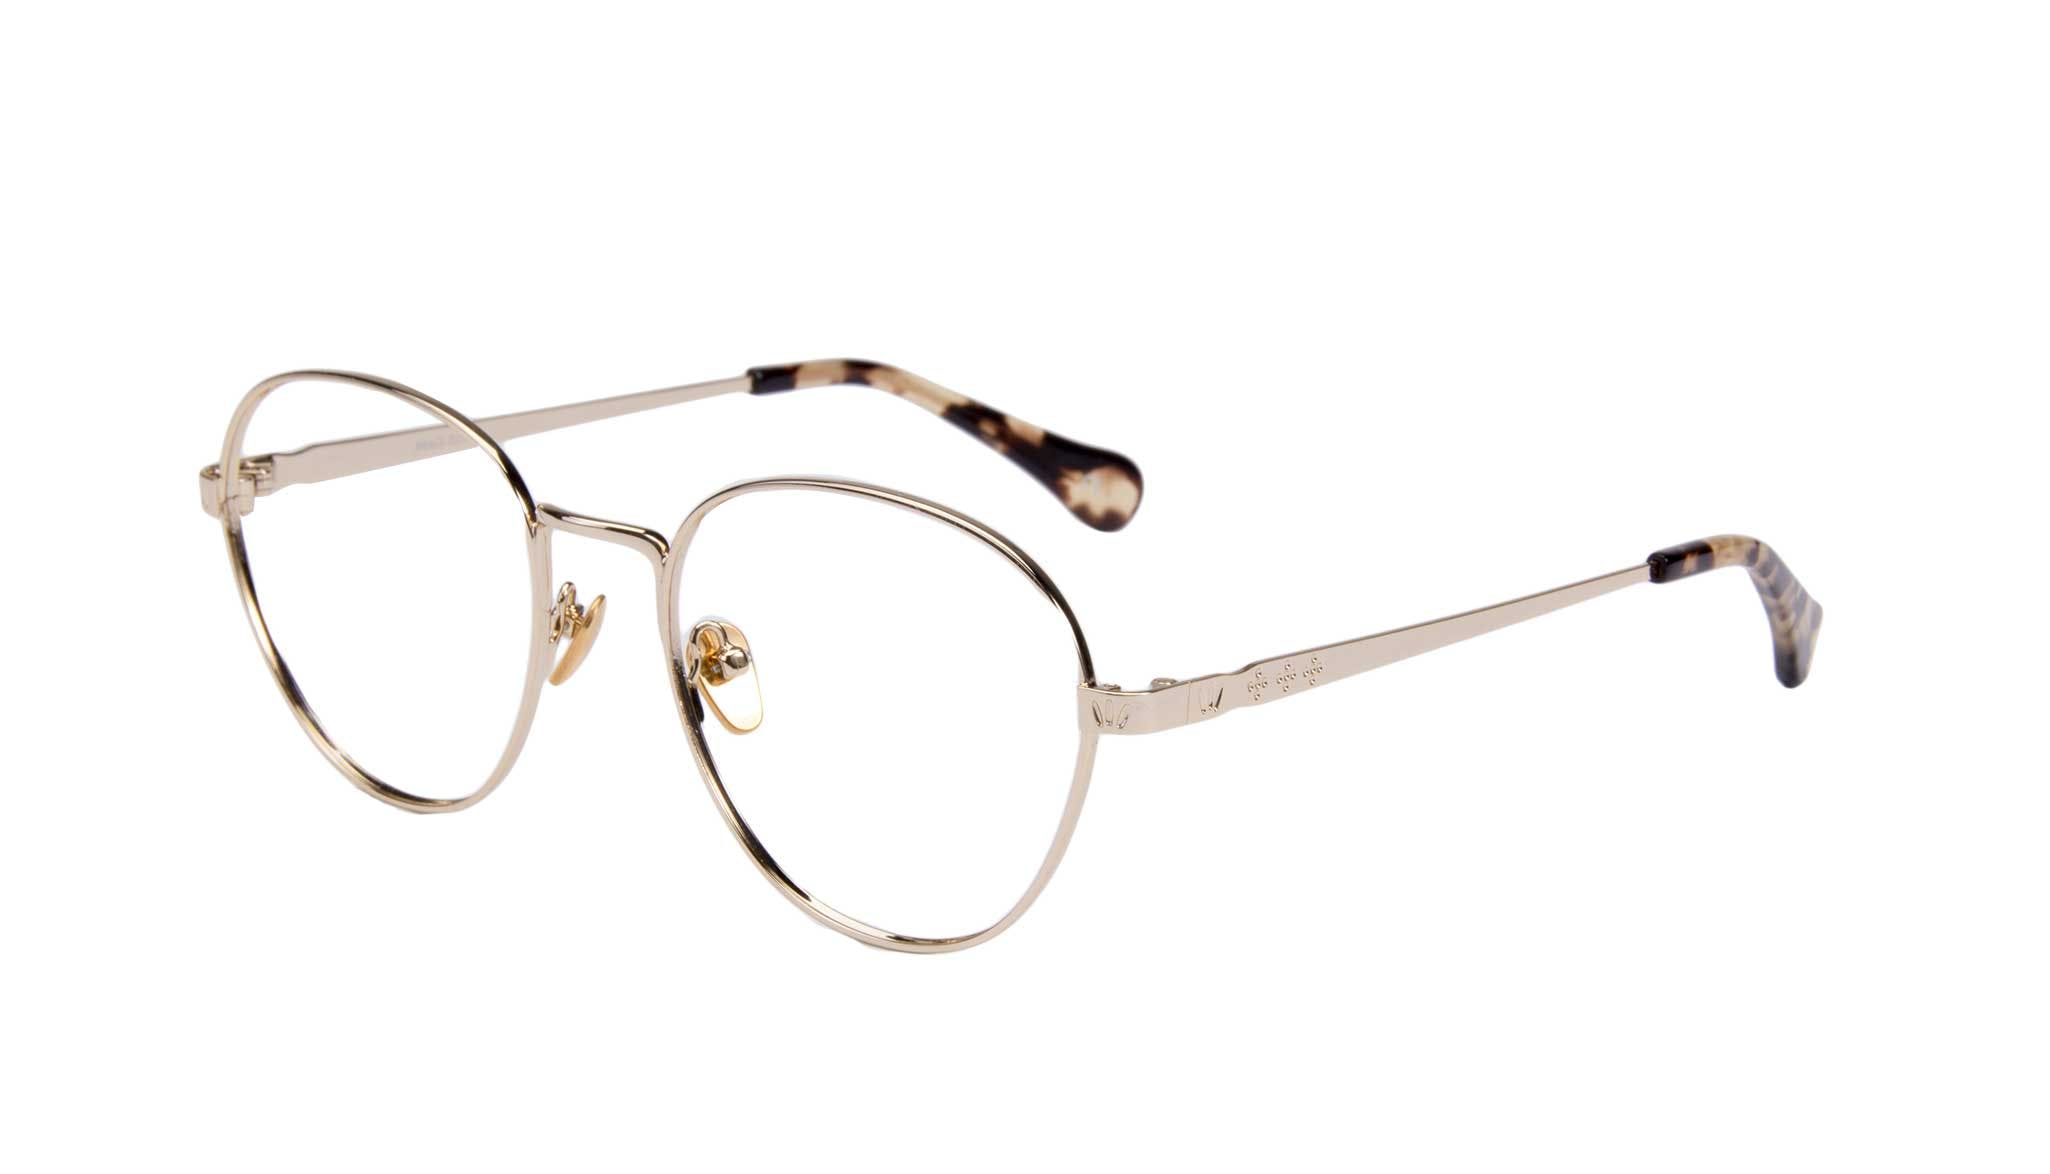 Affordable Fashion Glasses Round Eyeglasses Women Brace gold Tilt